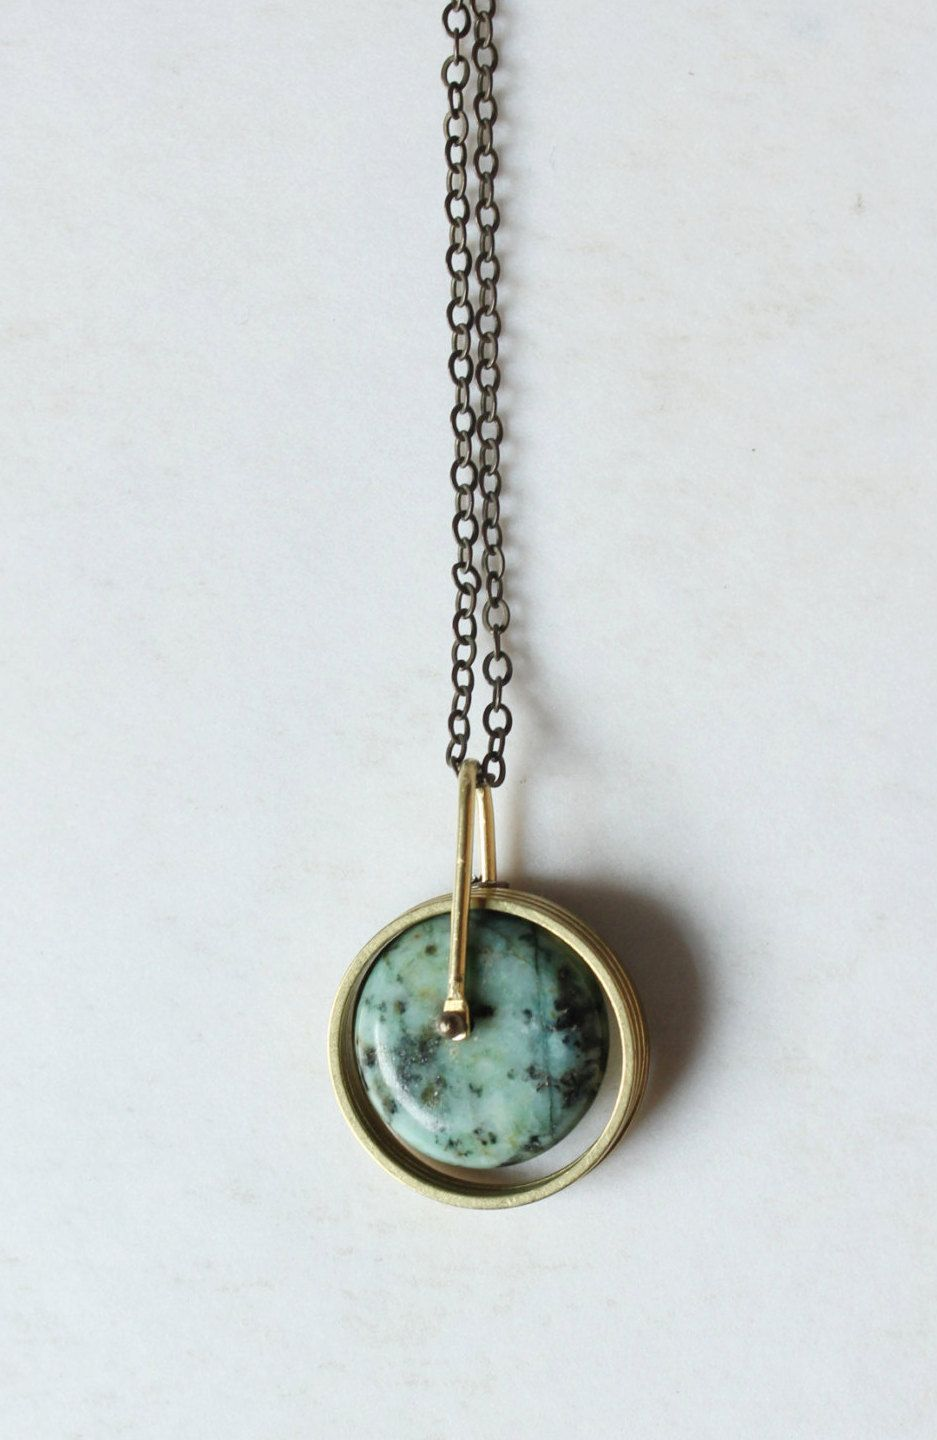 Turquoise necklace gold turquoise pendant necklace modern necklace turquoise necklace gold turquoise pendant necklace modern necklace minimalist necklace geometric pendant necklace mens necklace pendant aloadofball Image collections